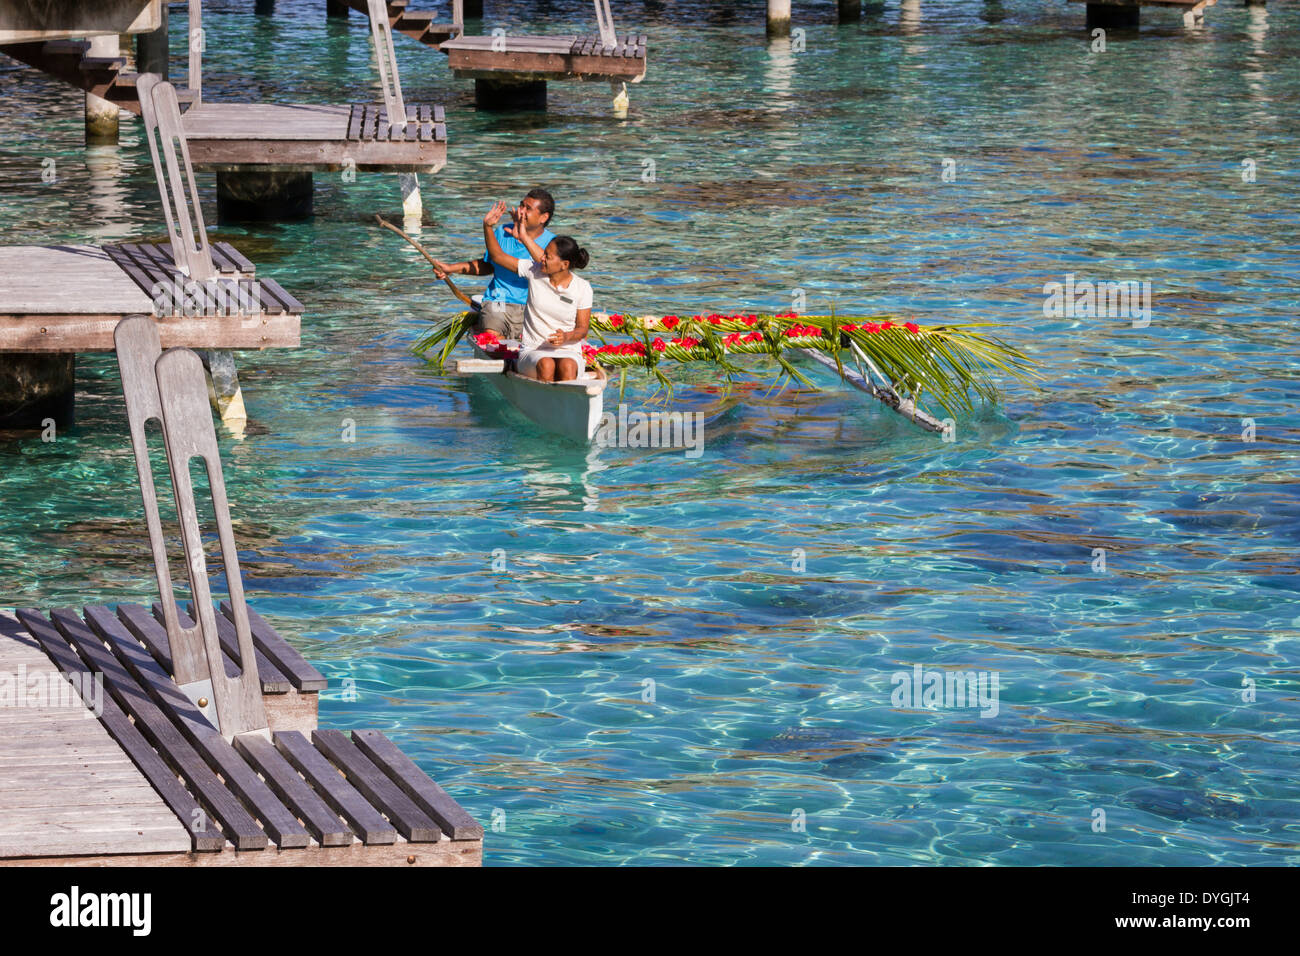 Polynesian people delivering room service in a canoe to overwater bungalow at a resort in French Polynesia - Stock Image